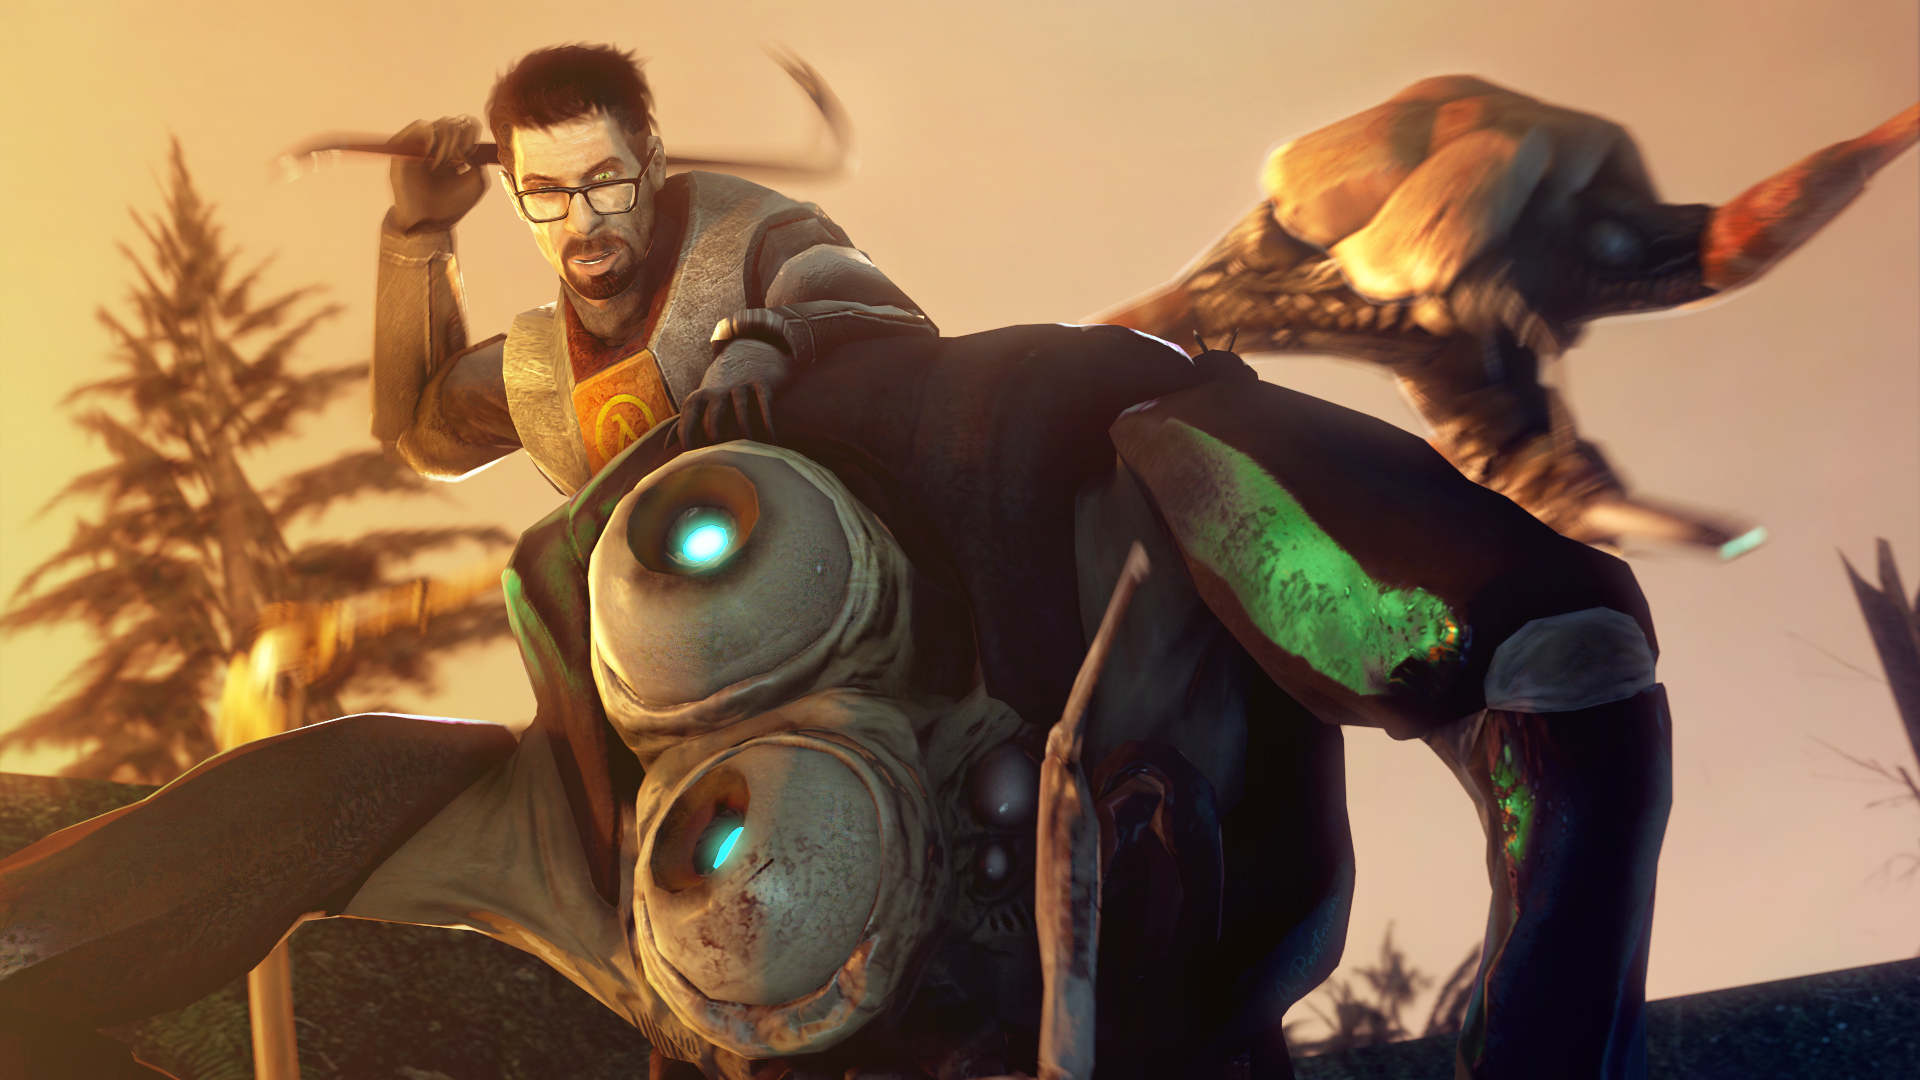 Images Half Life 2. Episode One monster 3D Graphics Games 1920x1080